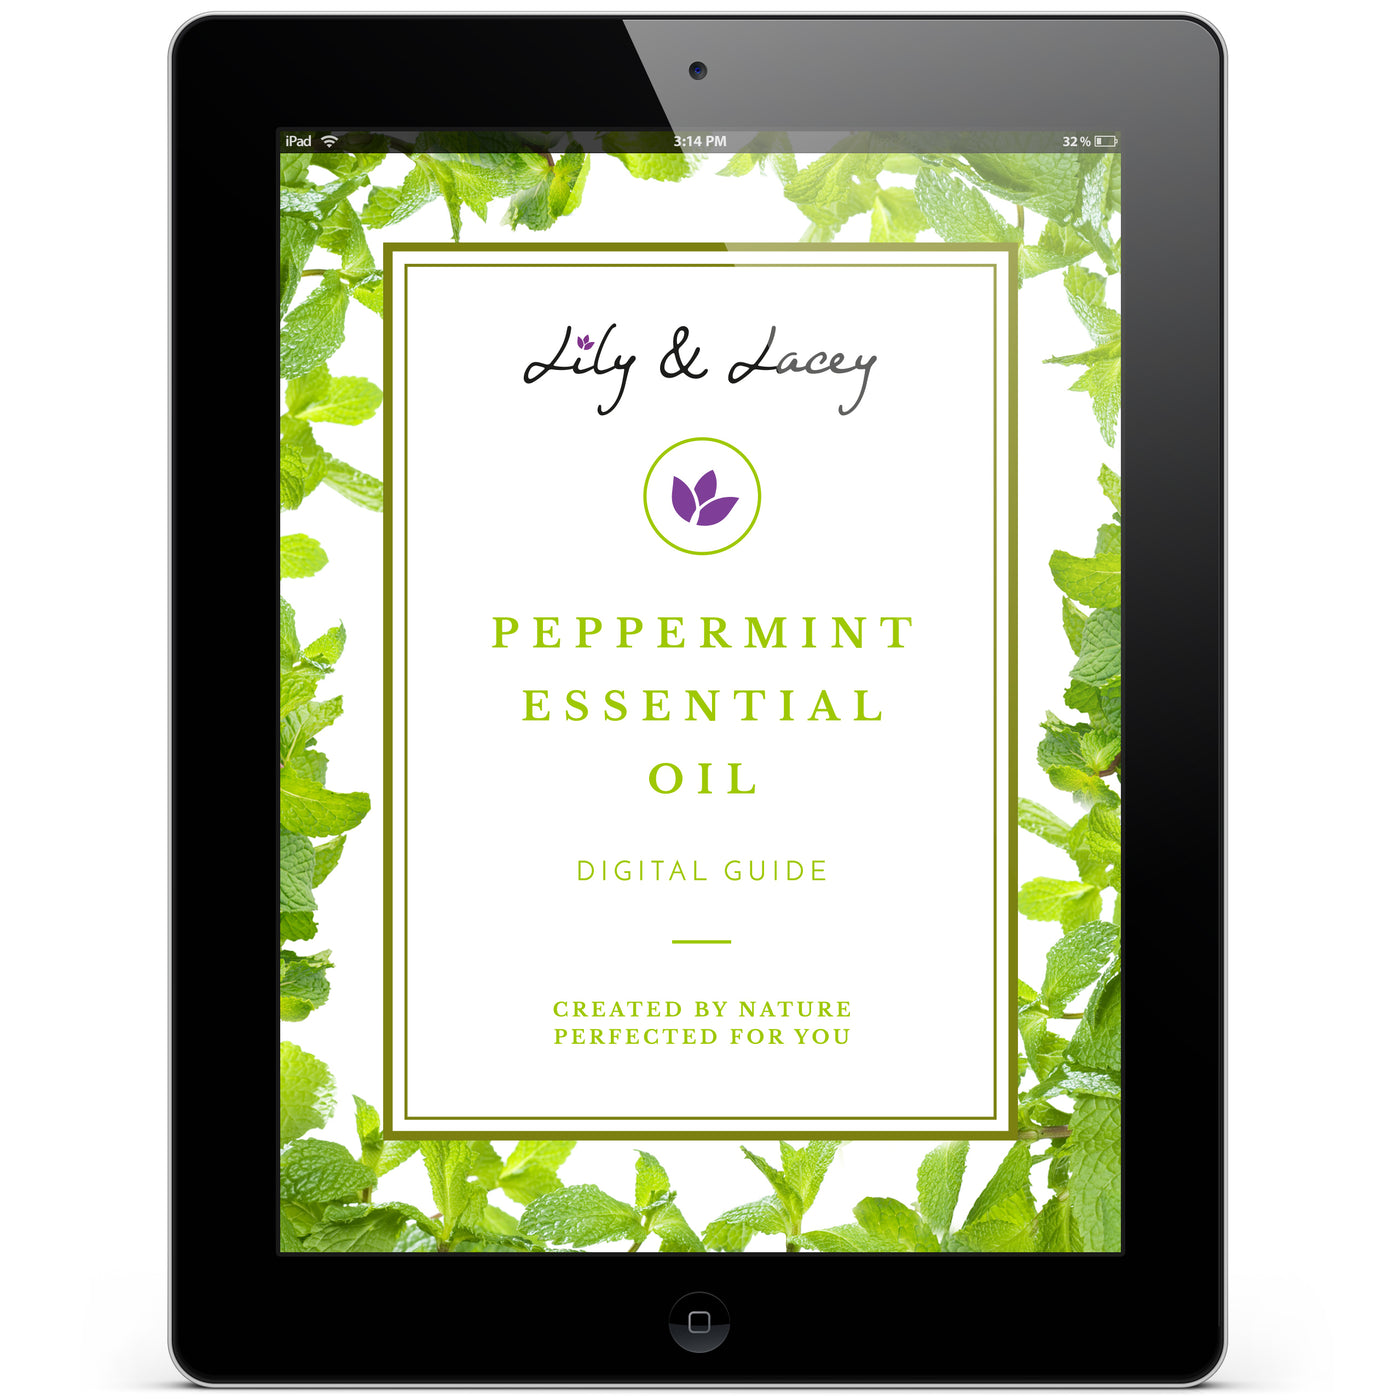 Lily & Lacey™ Peppermint Essential Oil